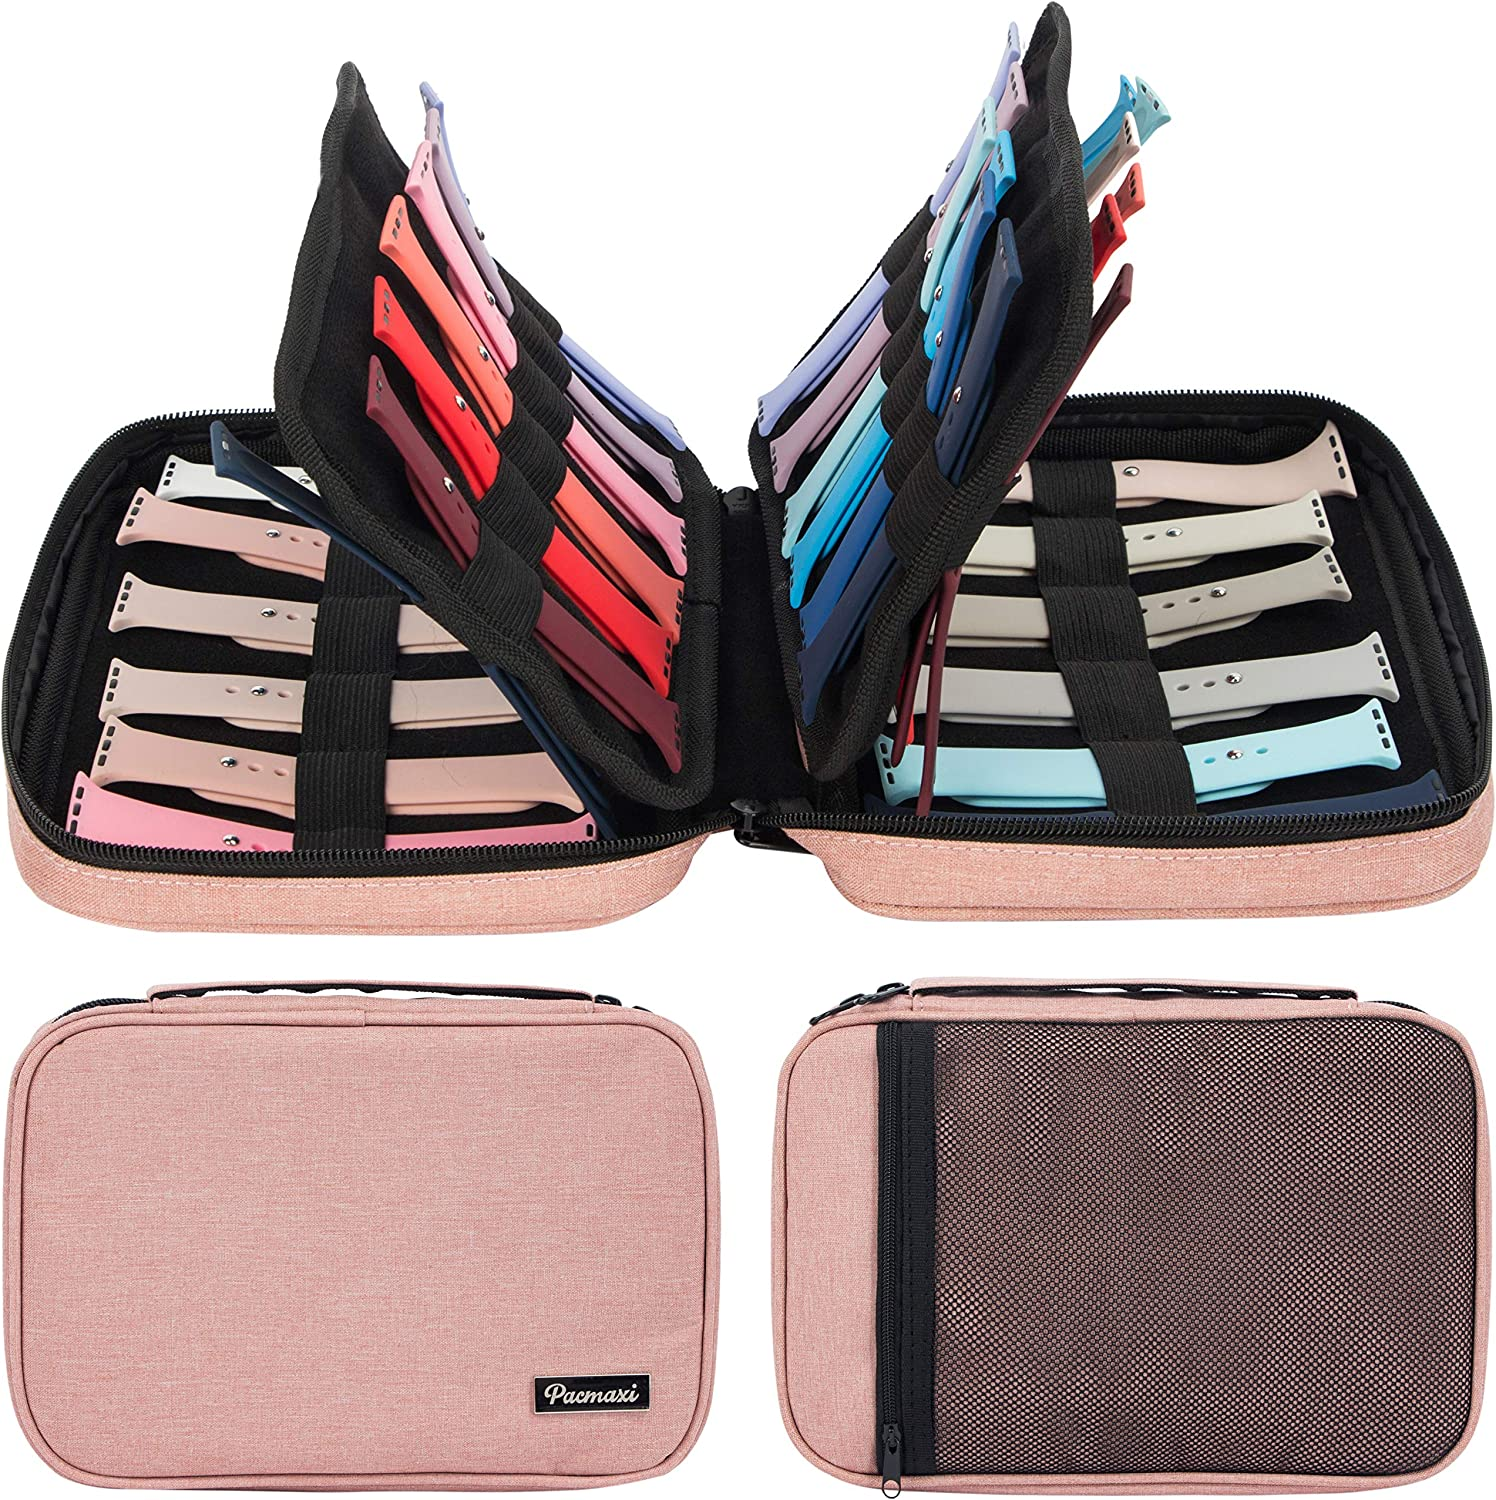 PACMAXI Watch Bands Storage Carrying Case Compatible with Watches, Watch Band Holder Stores 36 Watch Bands Fit for The Most Sizes of Watch Straps, Organizer for Watch Bands Accessories (Pink)